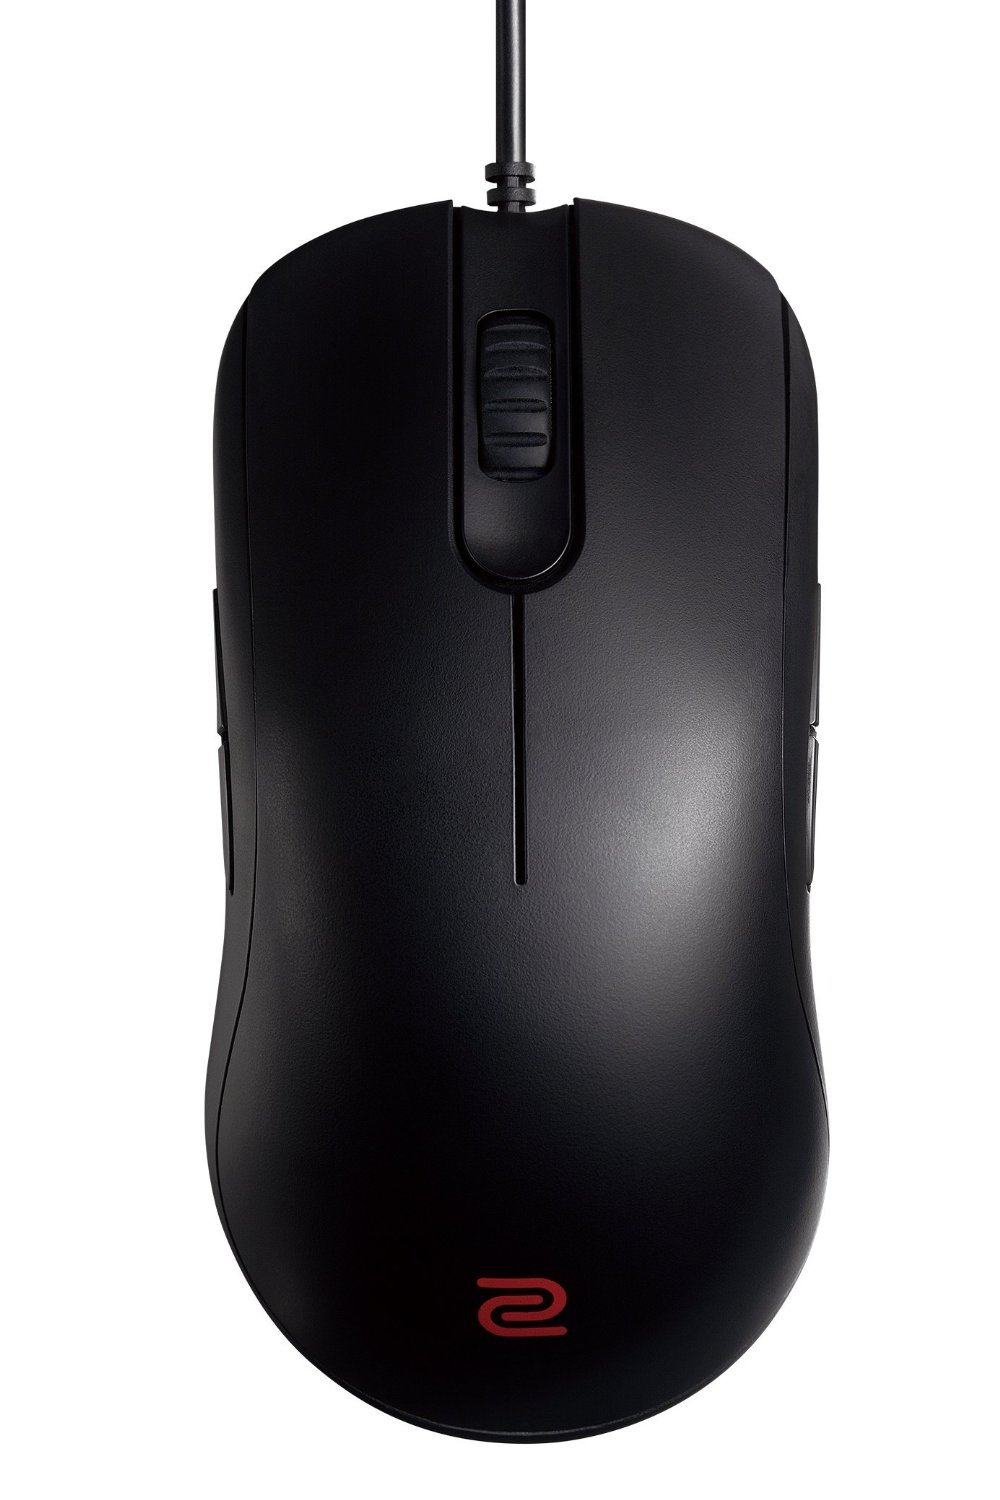 Zowie ZA12 Gaming Mouse (Medium) for PC Games image